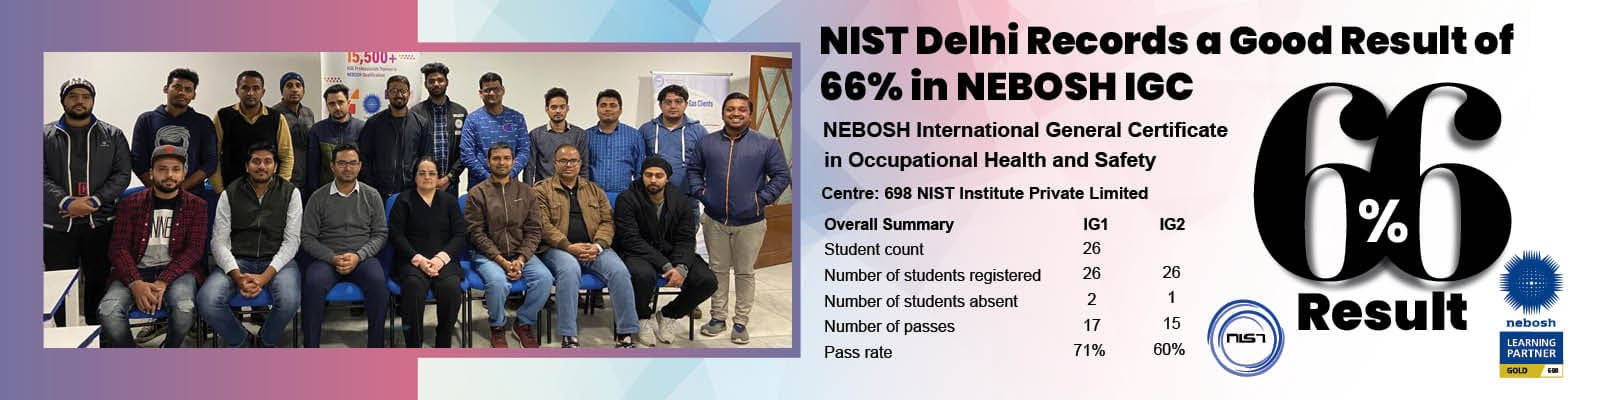 nist-delhi-records-a-fair-66-result-in-nebosh-igc